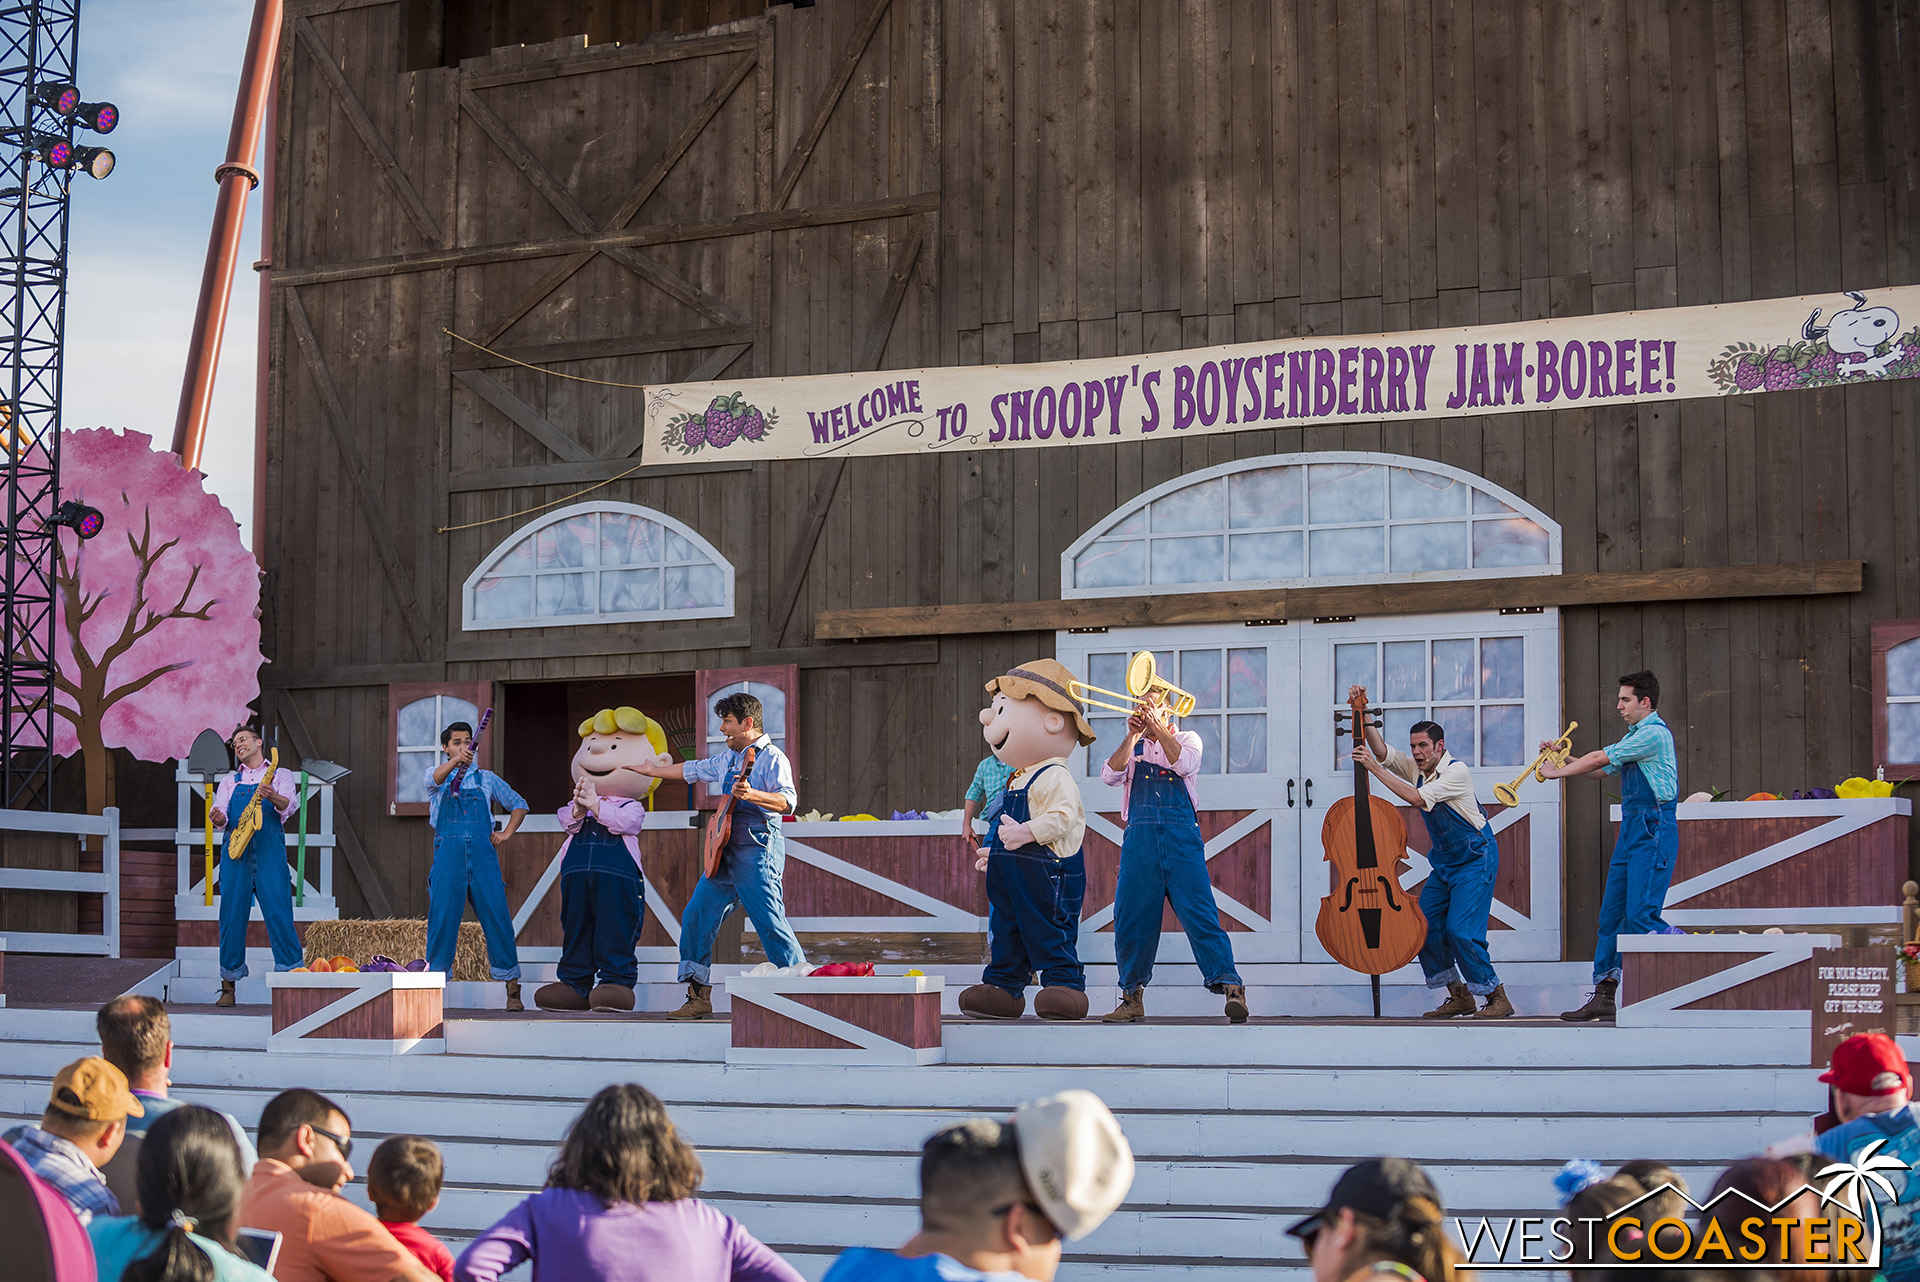 Snoopy's Boysenberry Jam-boree is back with another springtime musical!